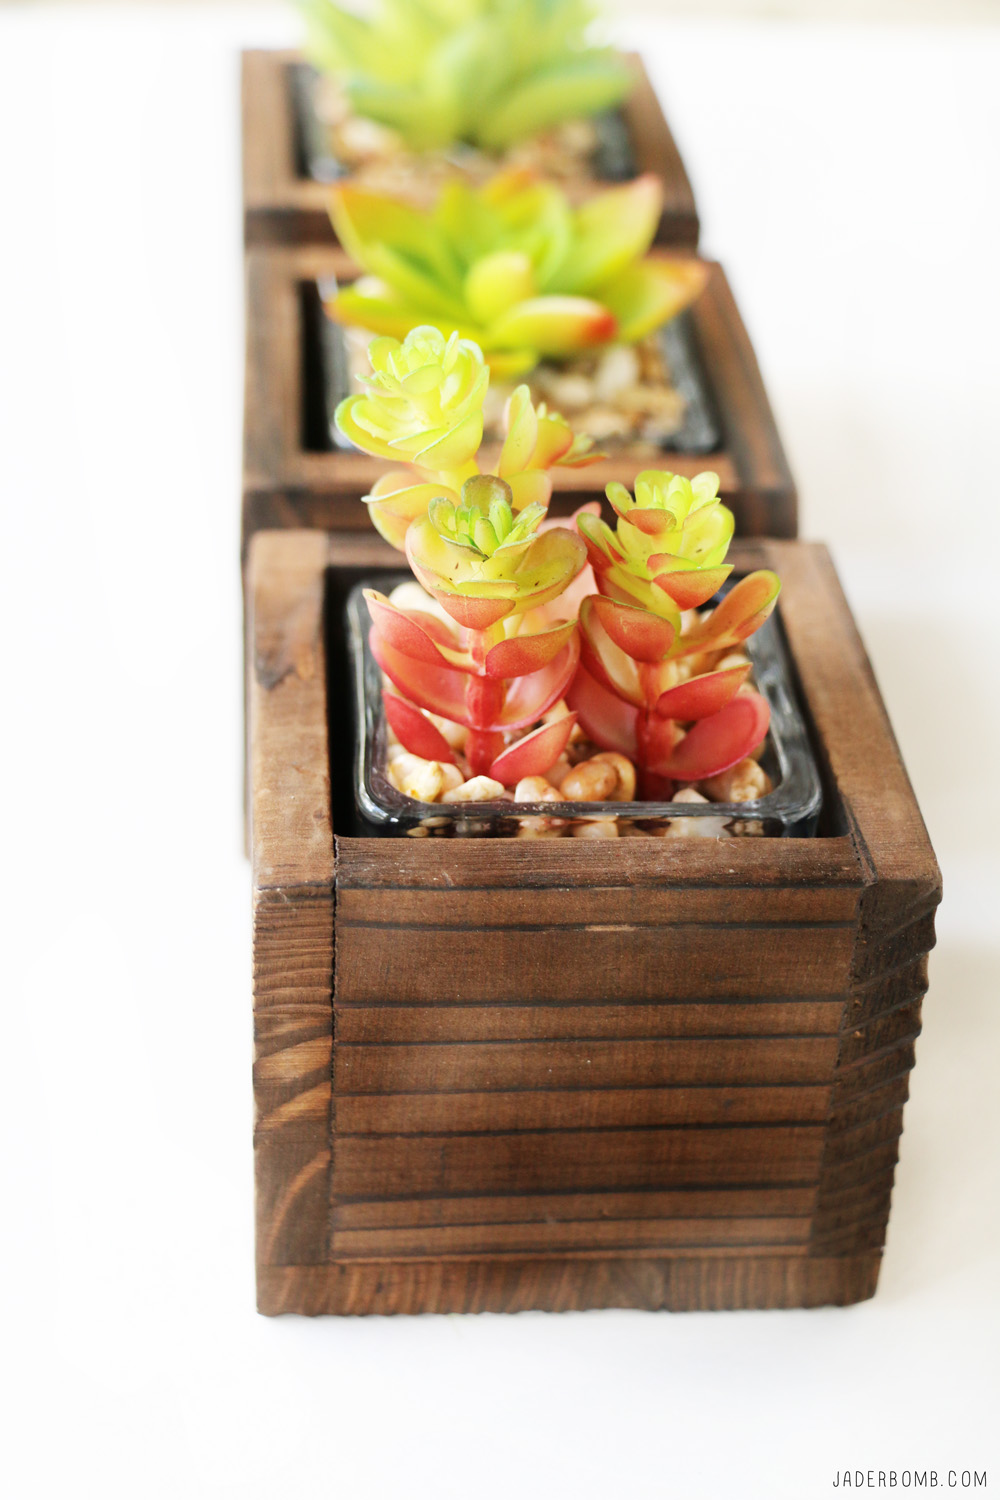 wax plant diy projects